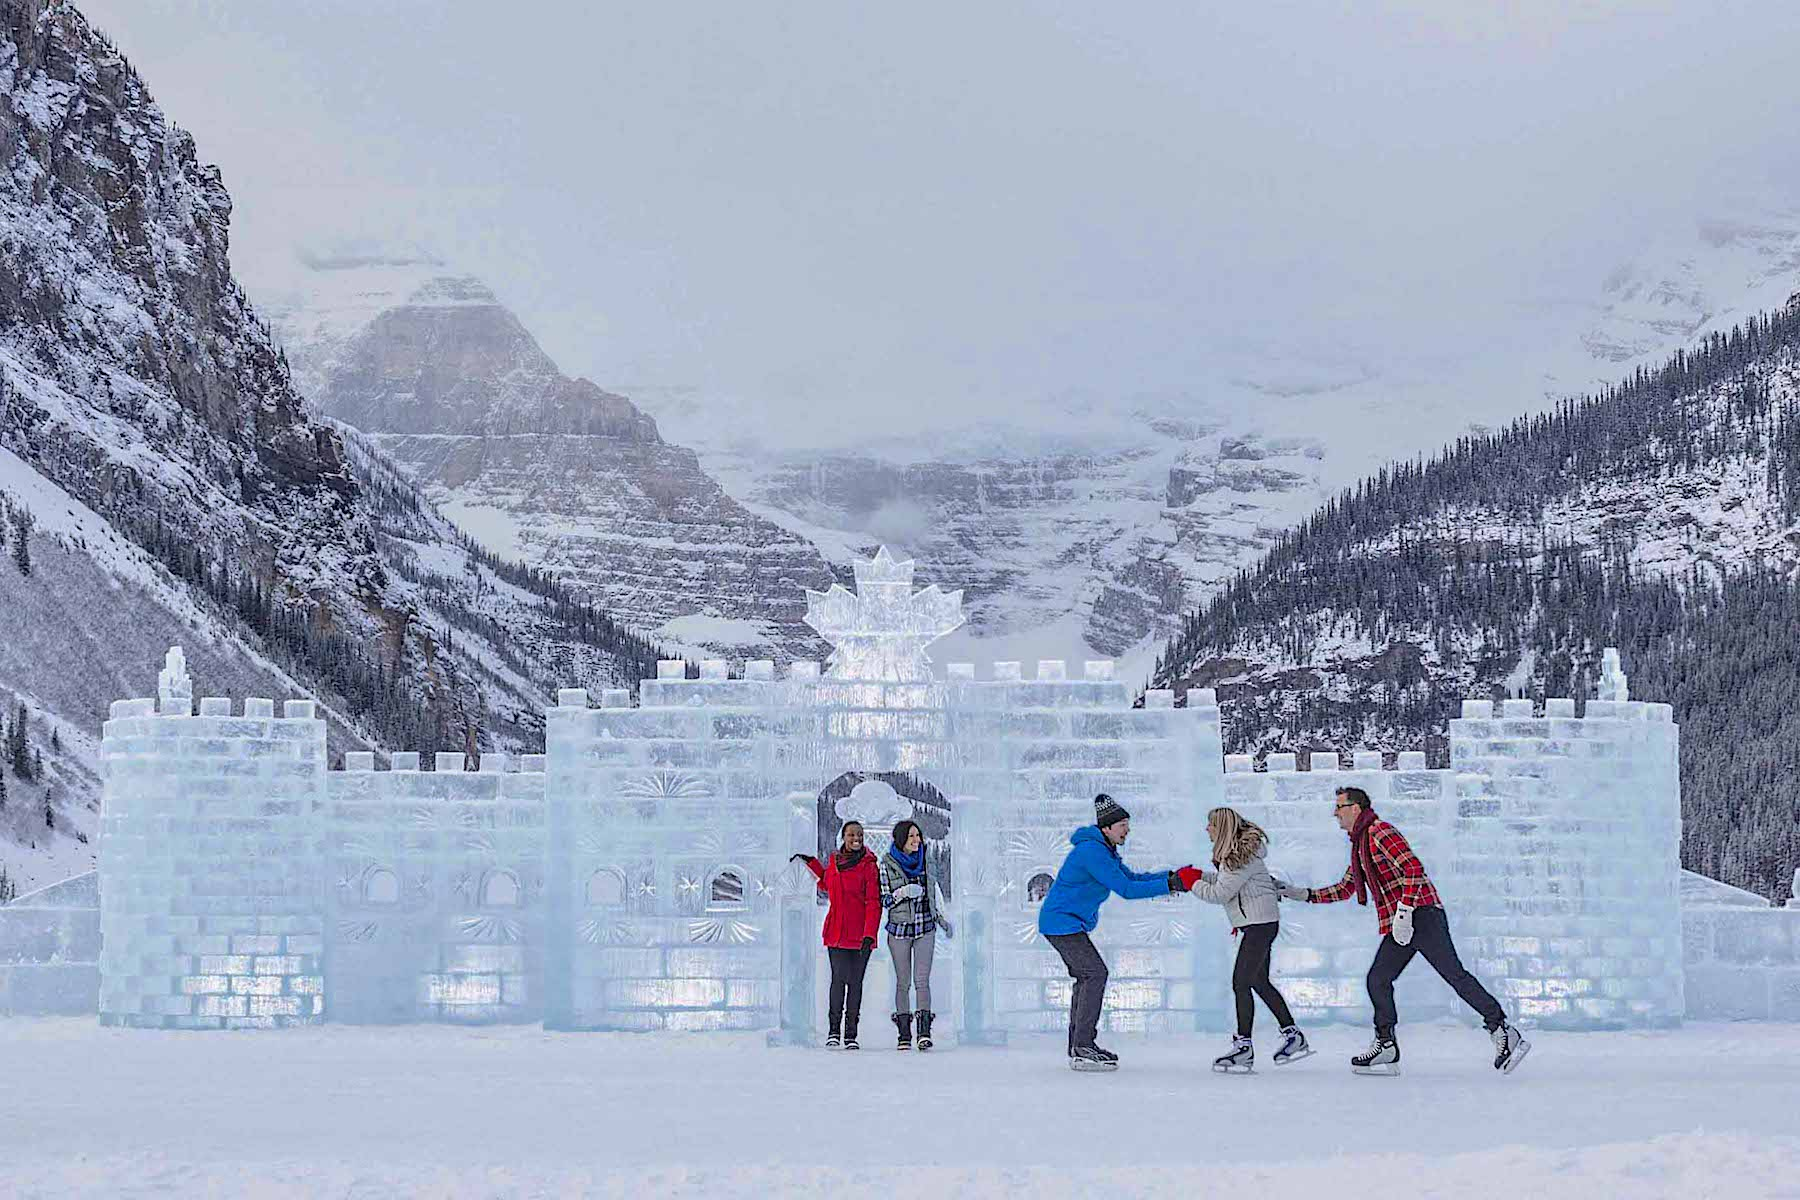 The ice castle on Lake Louise